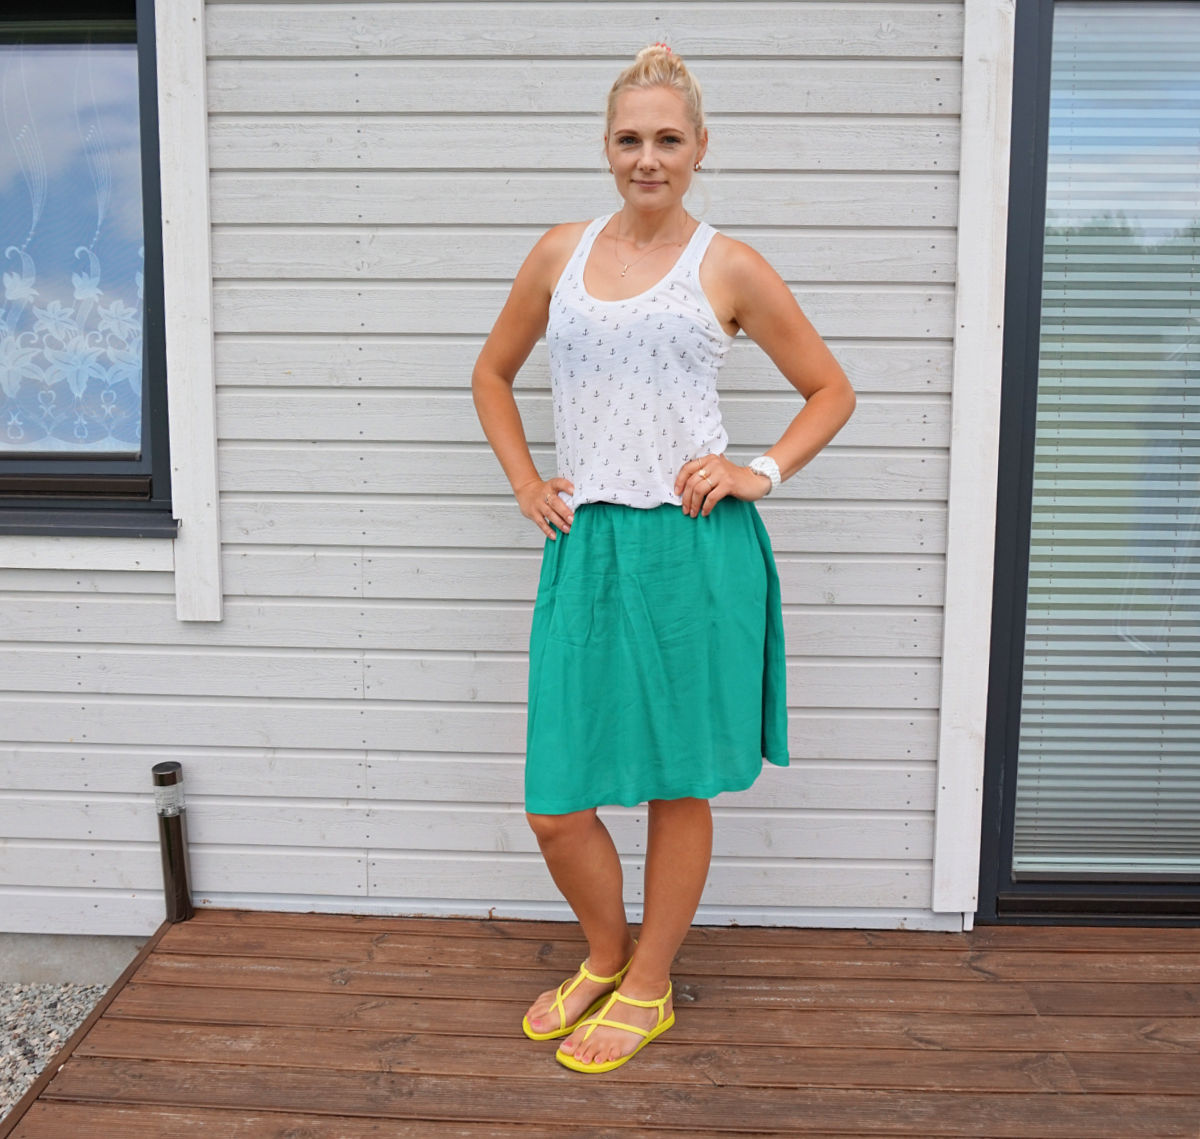 Simple summer outfit: white racerback top, green skirt and yellow sandals.